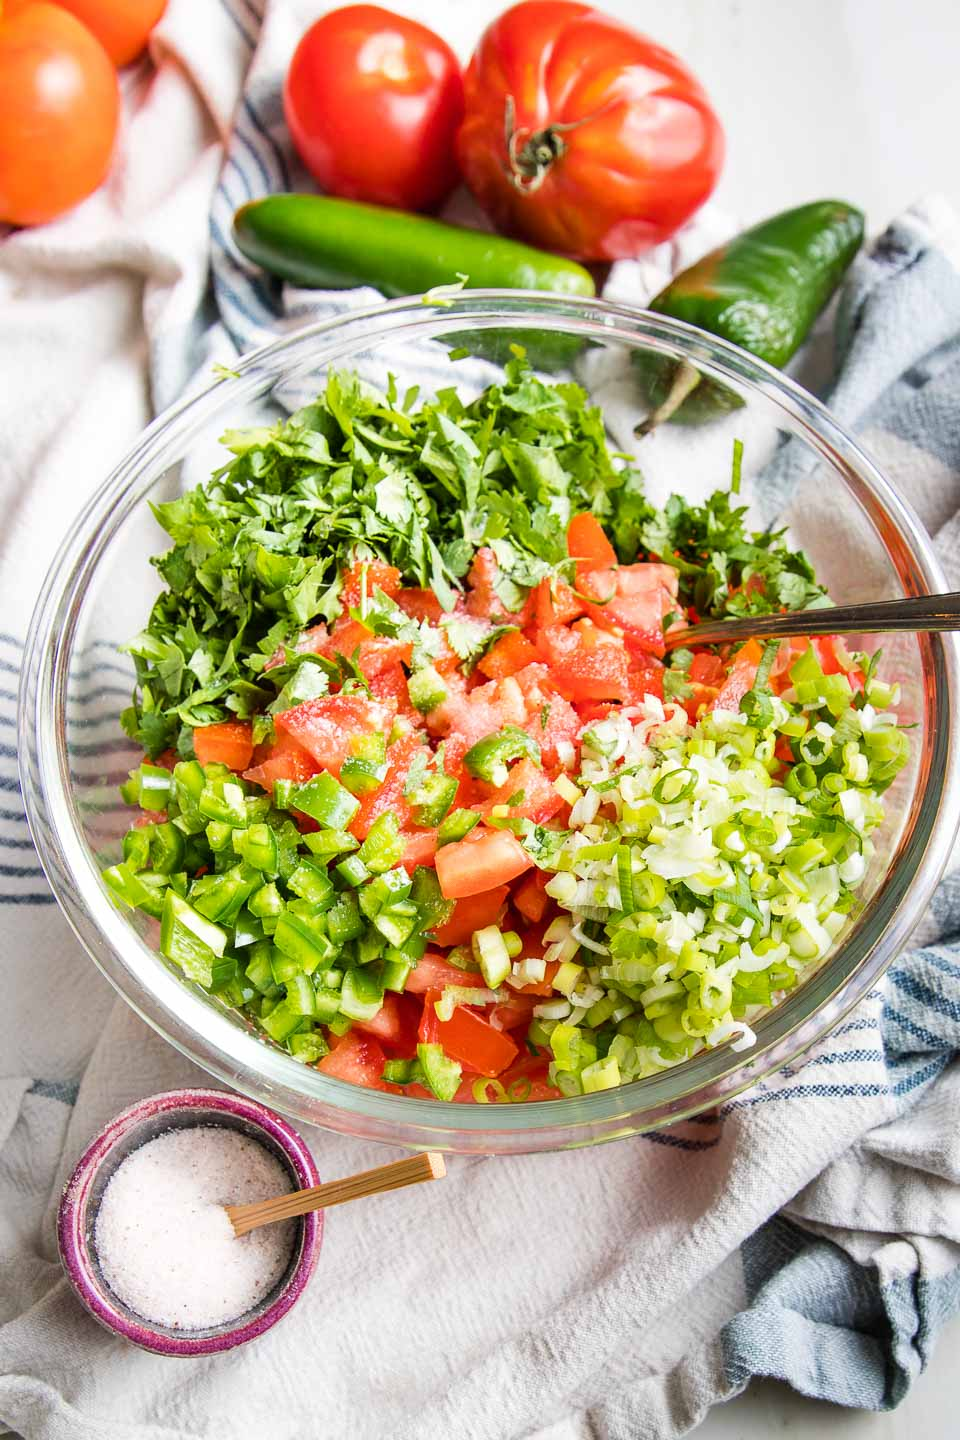 Chopped tomatoes, jalapenos, scallions and cilantro in a glass bowl with a small dish of salt and more raw veggies around it.